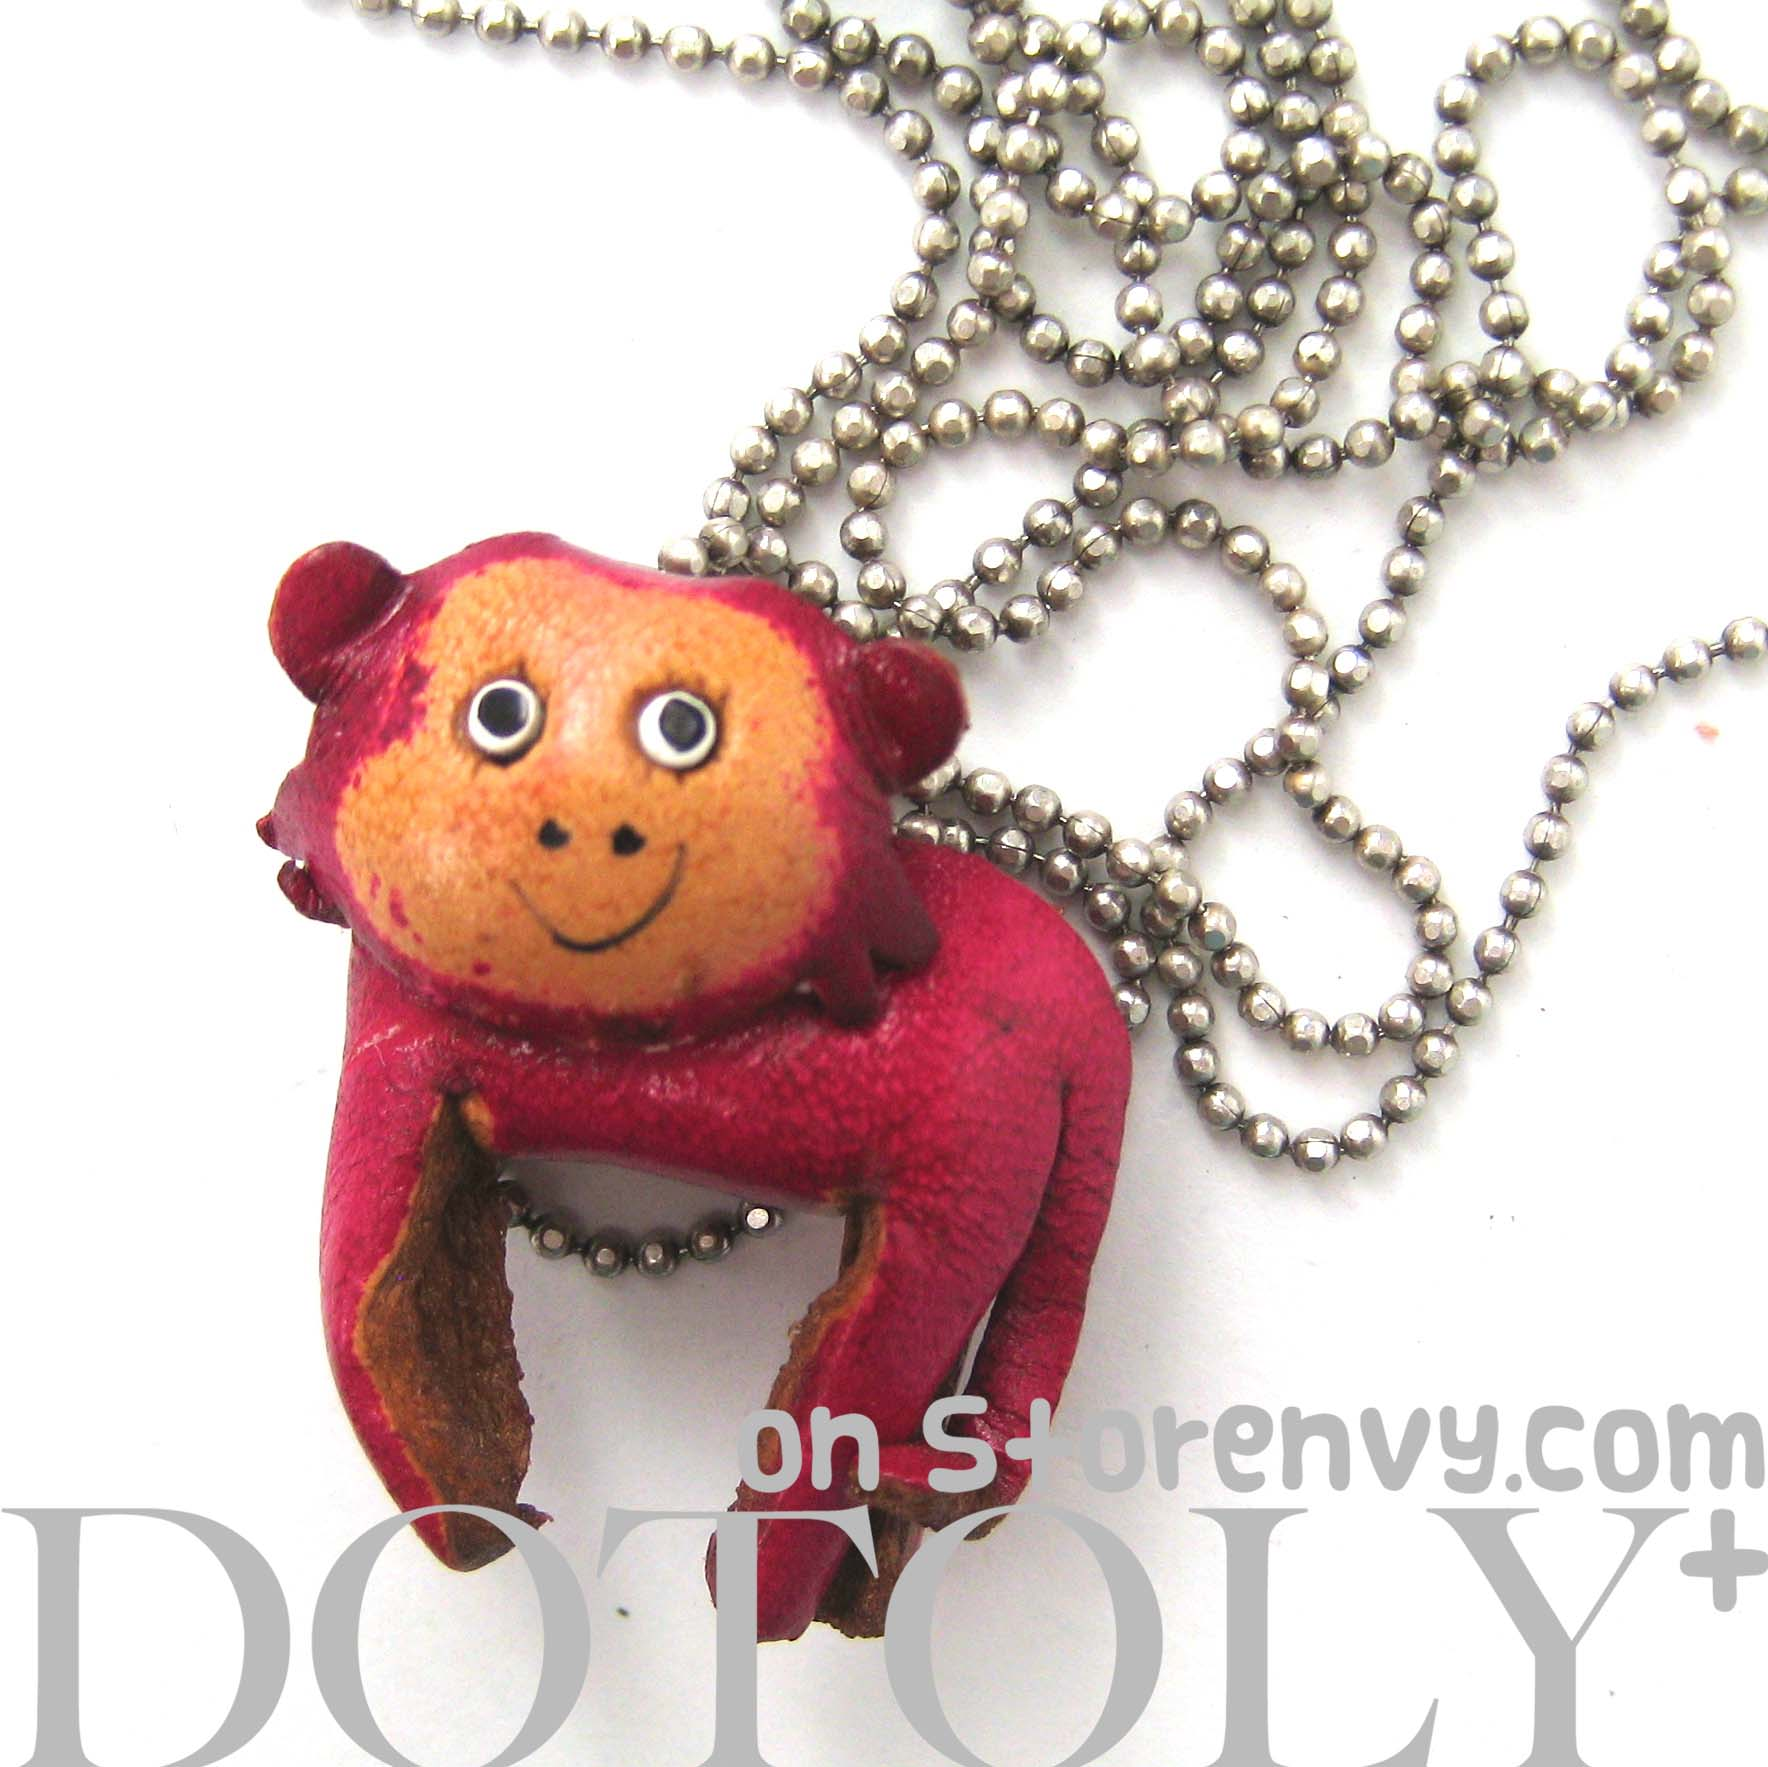 faux-leather-cute-monkey-animal-charm-necklace-with-mobile-strap